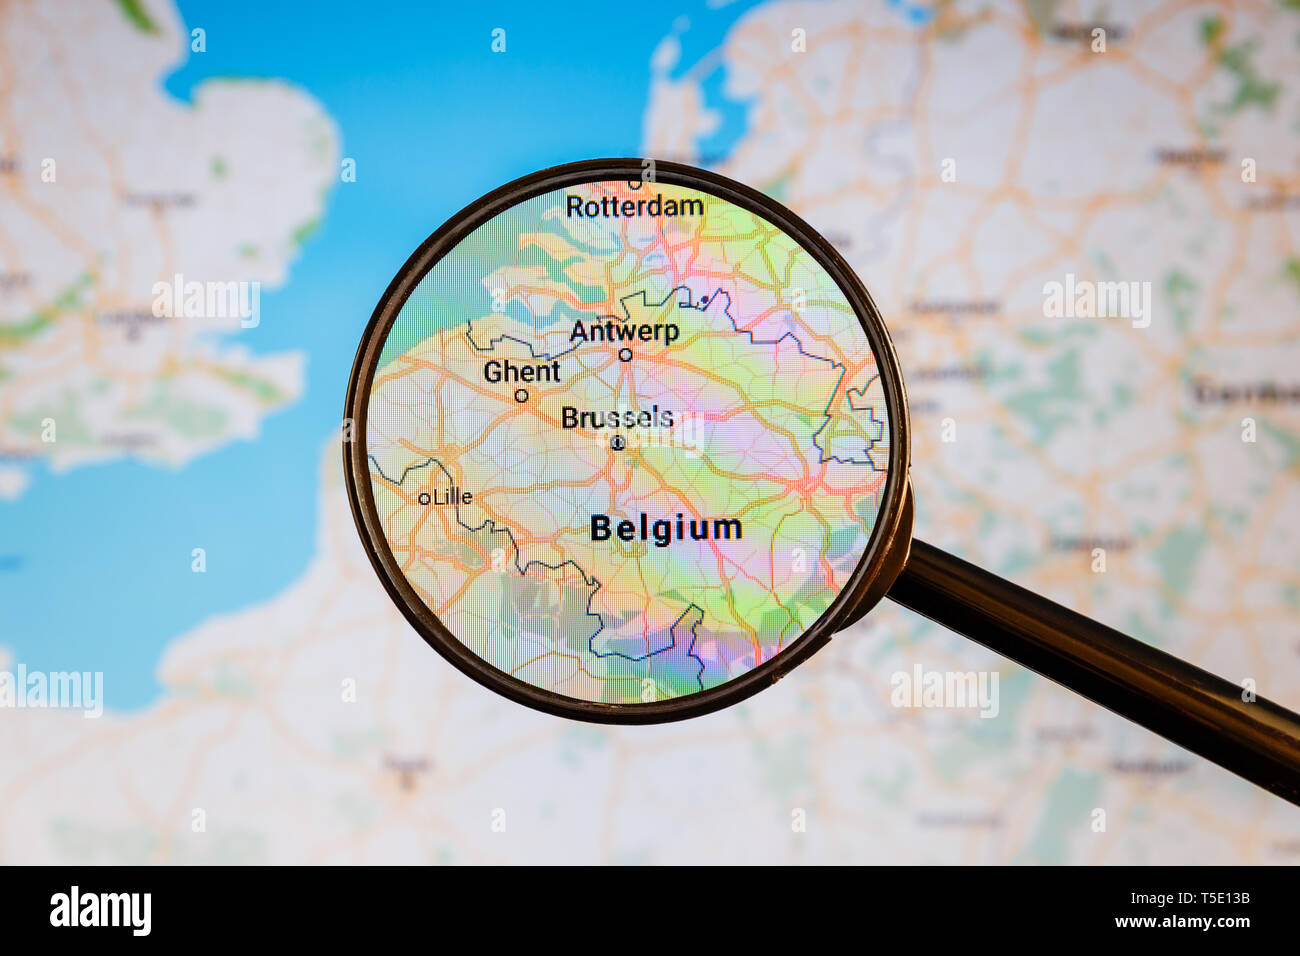 Brussels, Belgium. Political map. City visualization illustrative concept on display screen through magnifying glass. - Stock Image